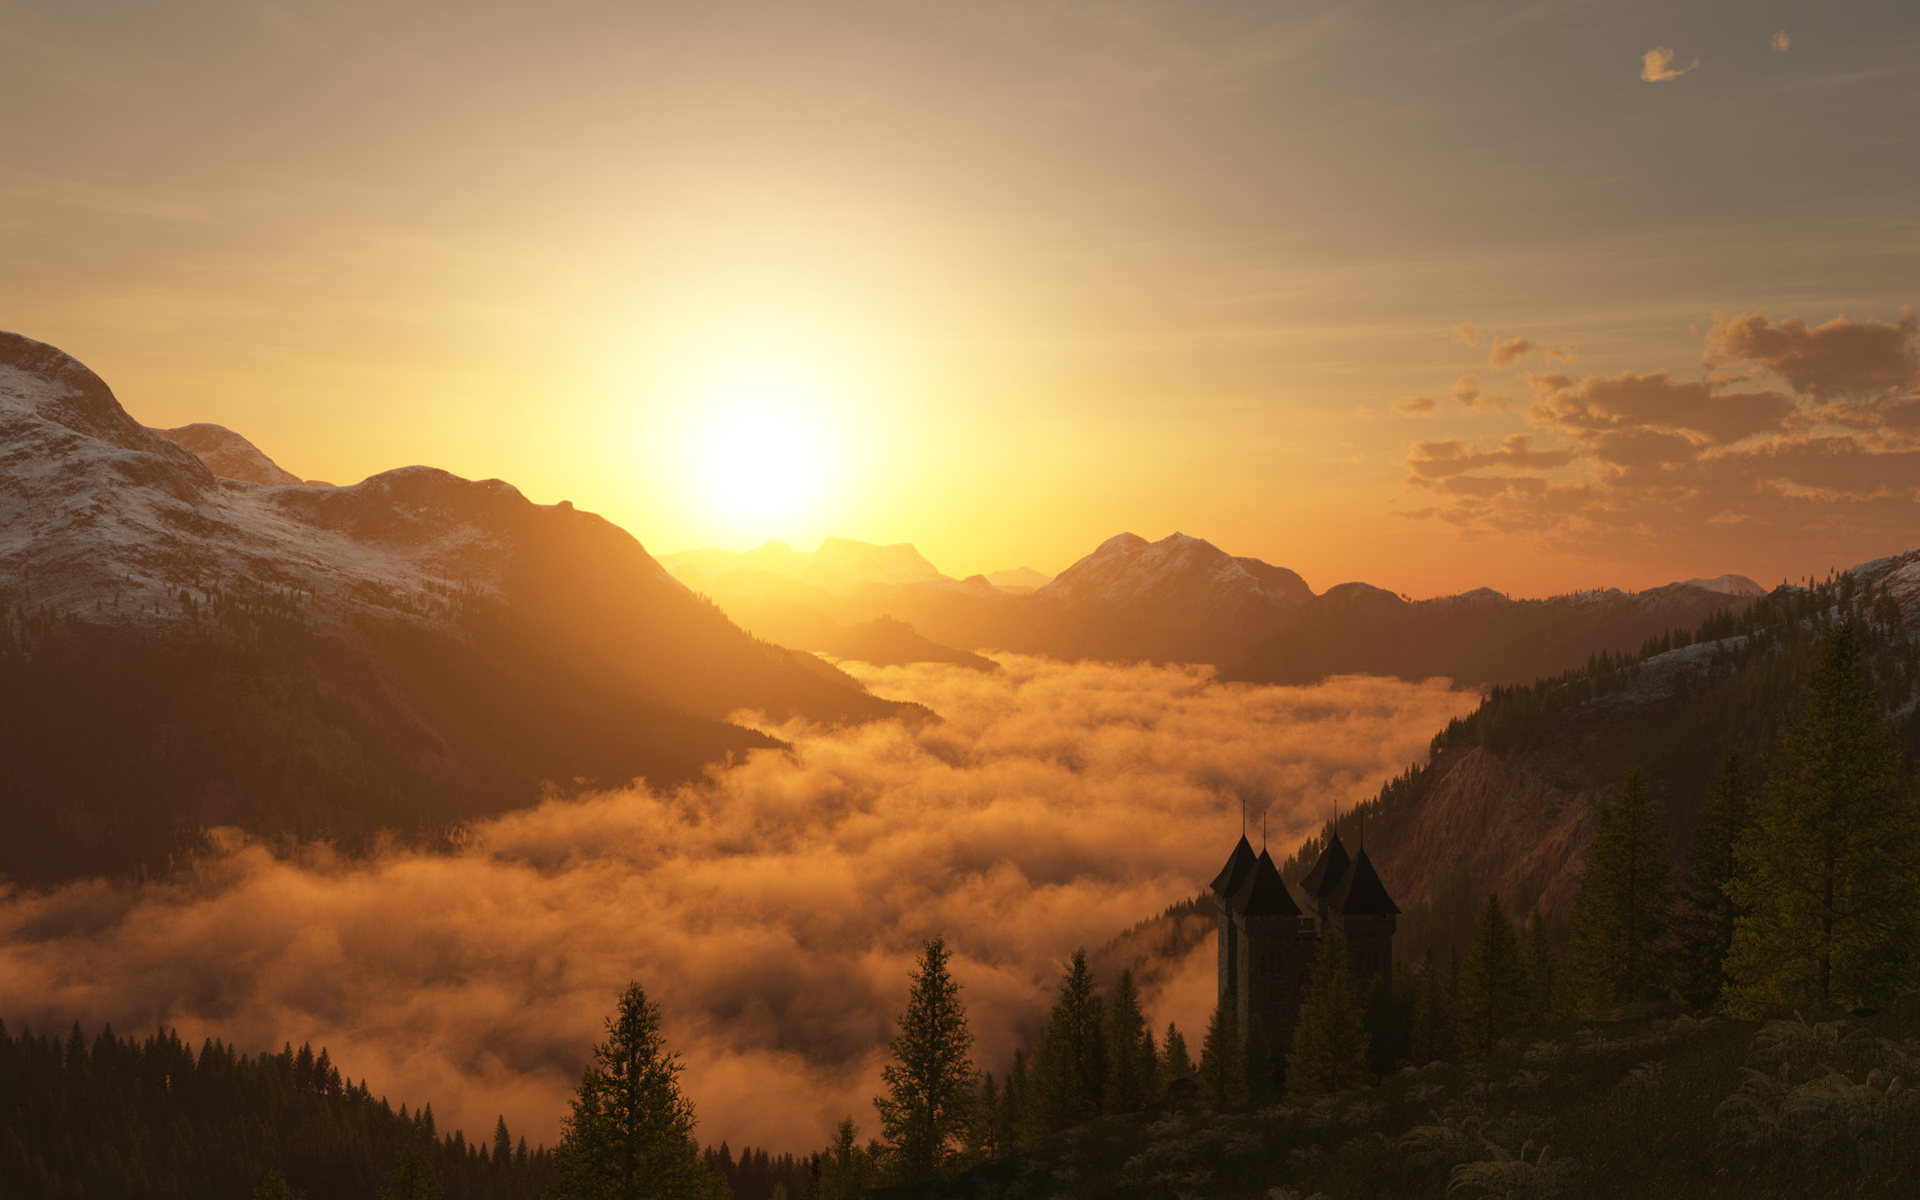 sunset images mountains